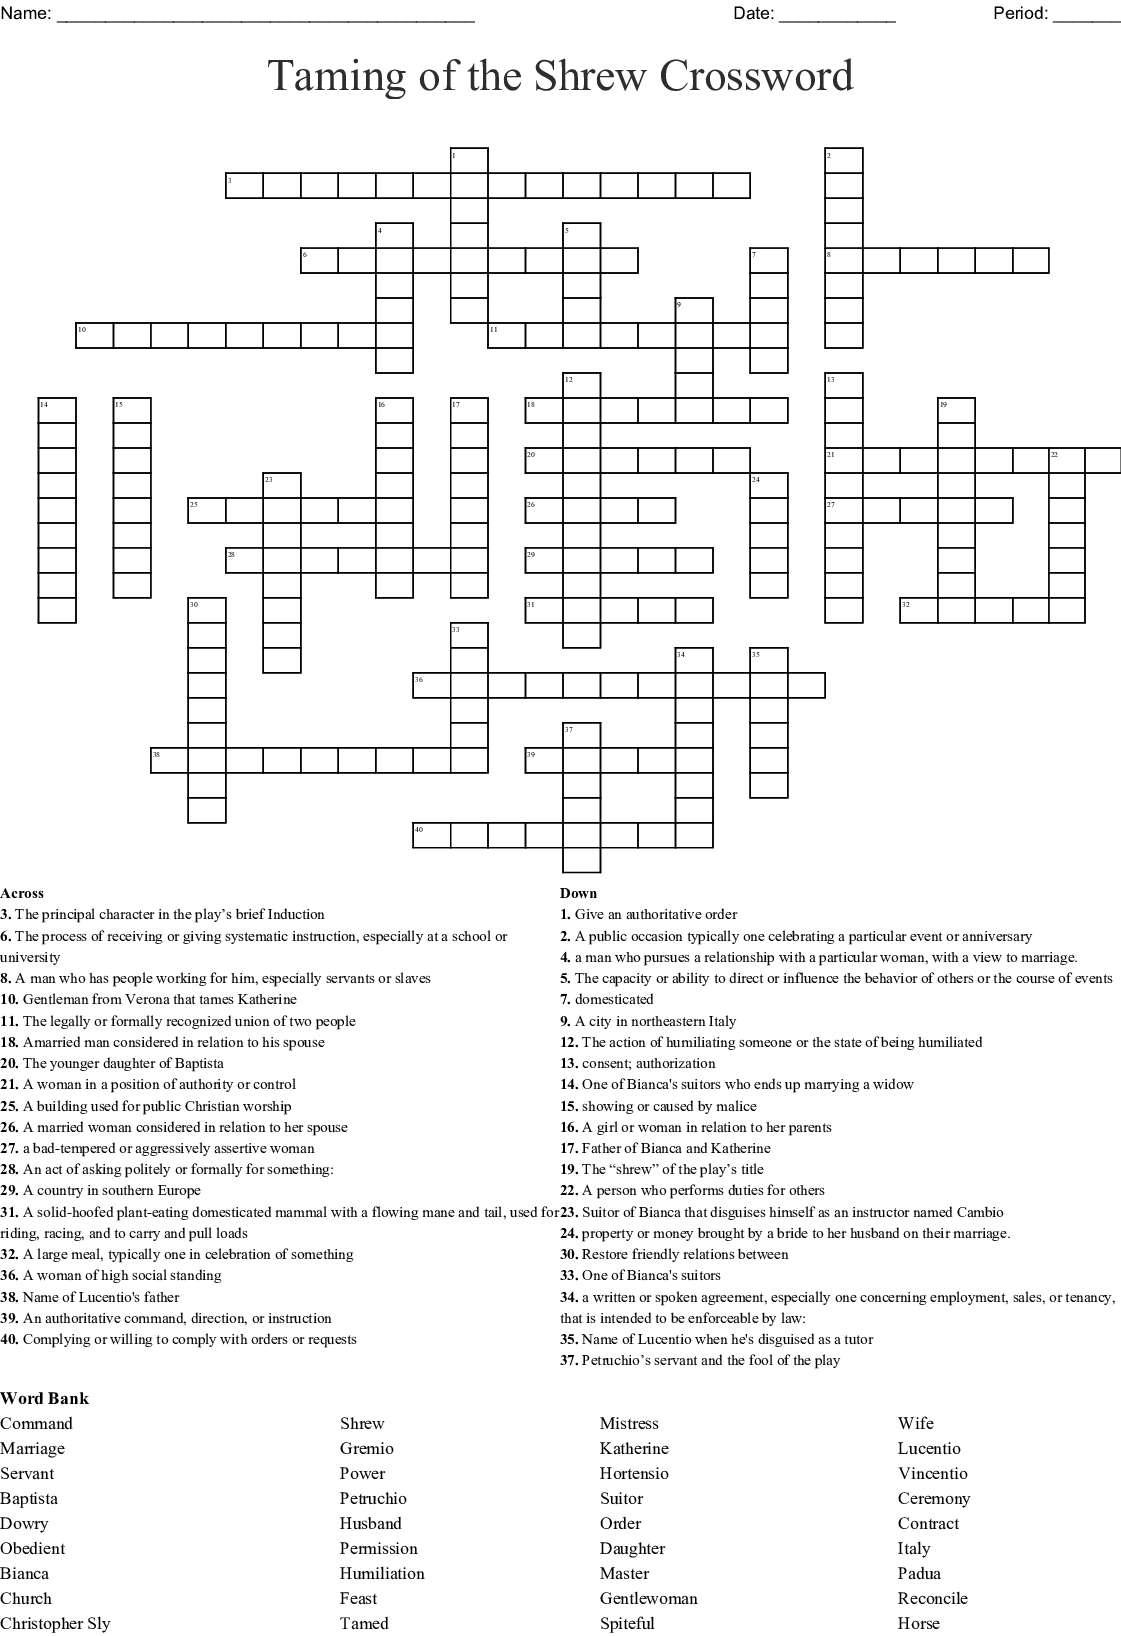 The Taming Of The Shrew Word Search